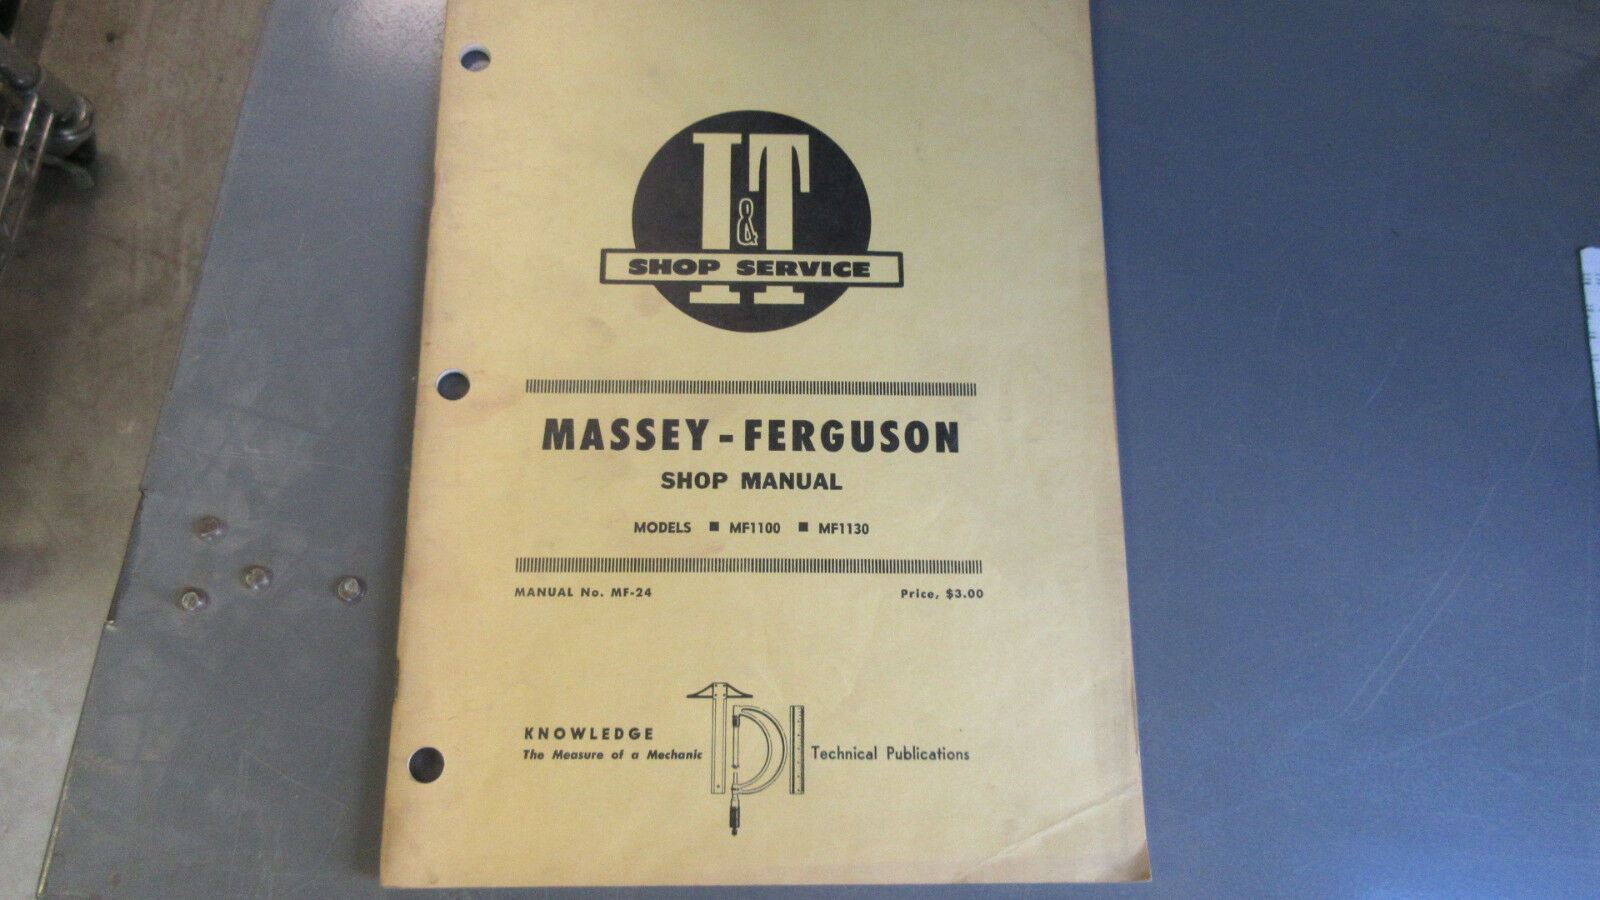 Massey Ferguson 1100, 1130 Tractor I&t Shop Service Manual # Mf-24 1 of  2Only 1 available Massey Ferguson 1100 ...